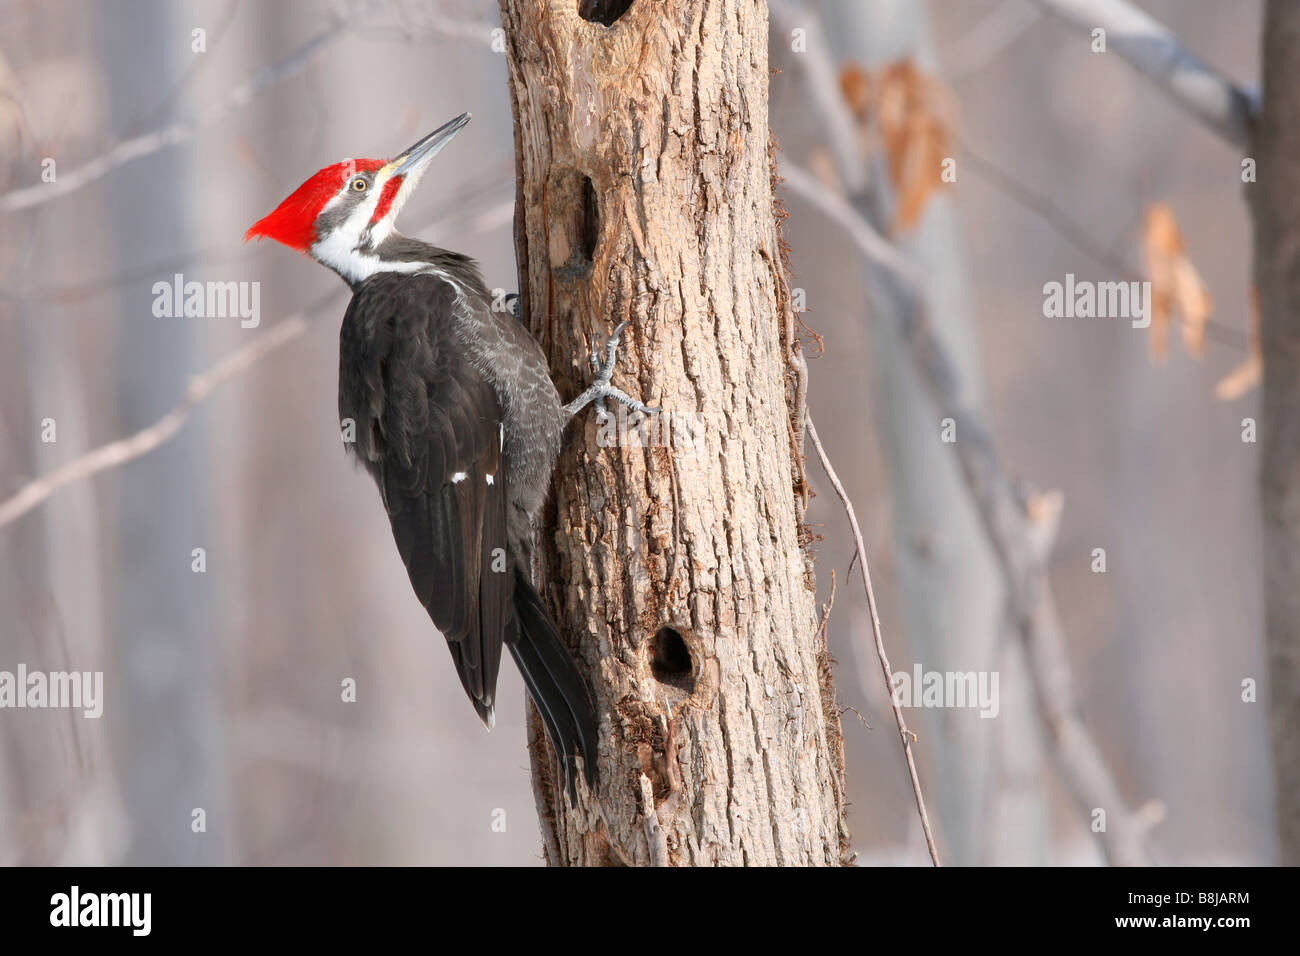 Pileated Woodpecker - Stock Image